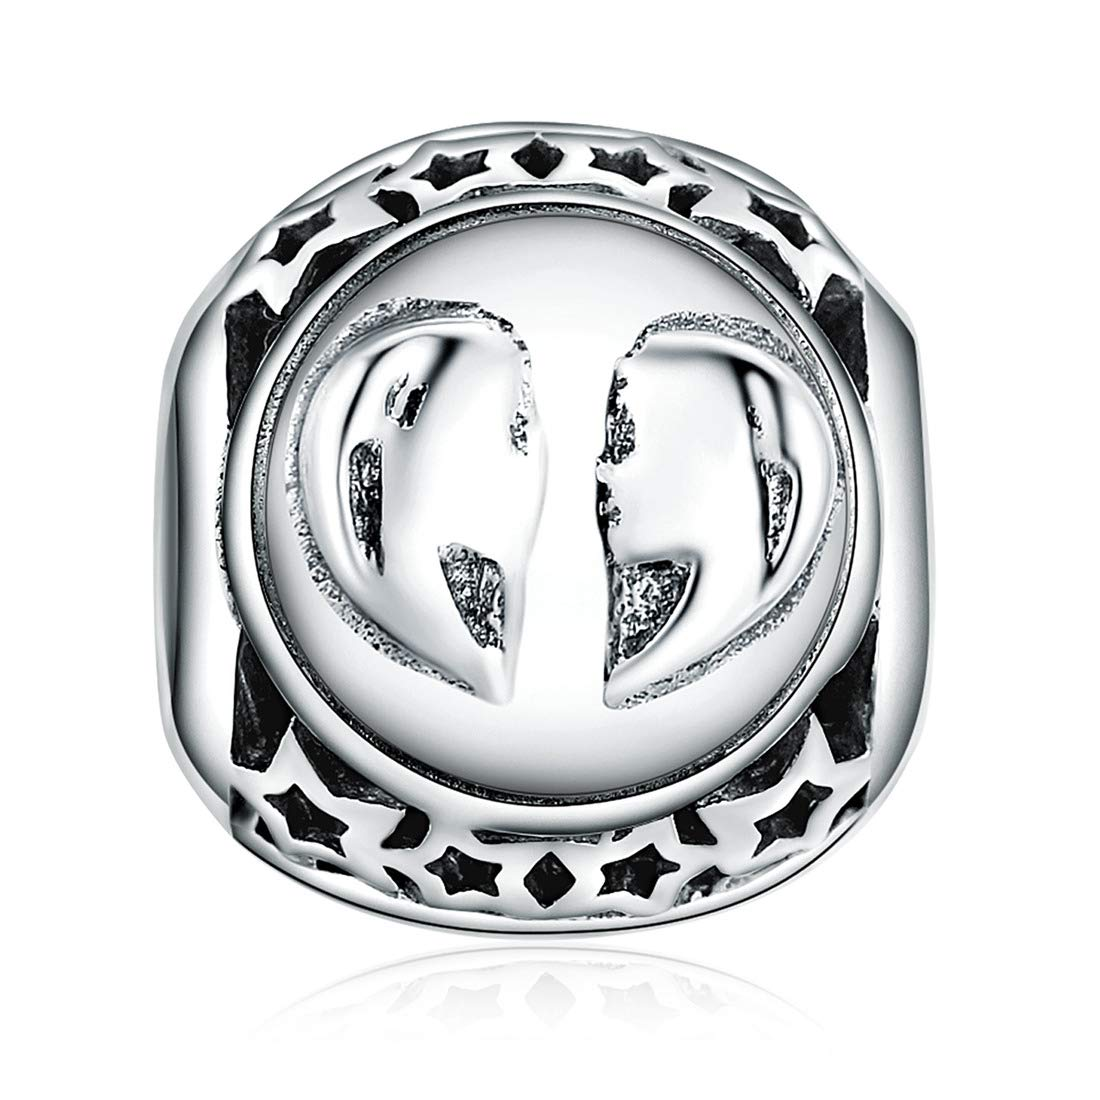 ChicSilver Zodiac Sign Charms for Charm Bracelets - 925 Sterling Silver 12 Constellation Charms Beads DIY for Bracelet Necklace, Birthday Gifts for Women/Men(with Gift Box)